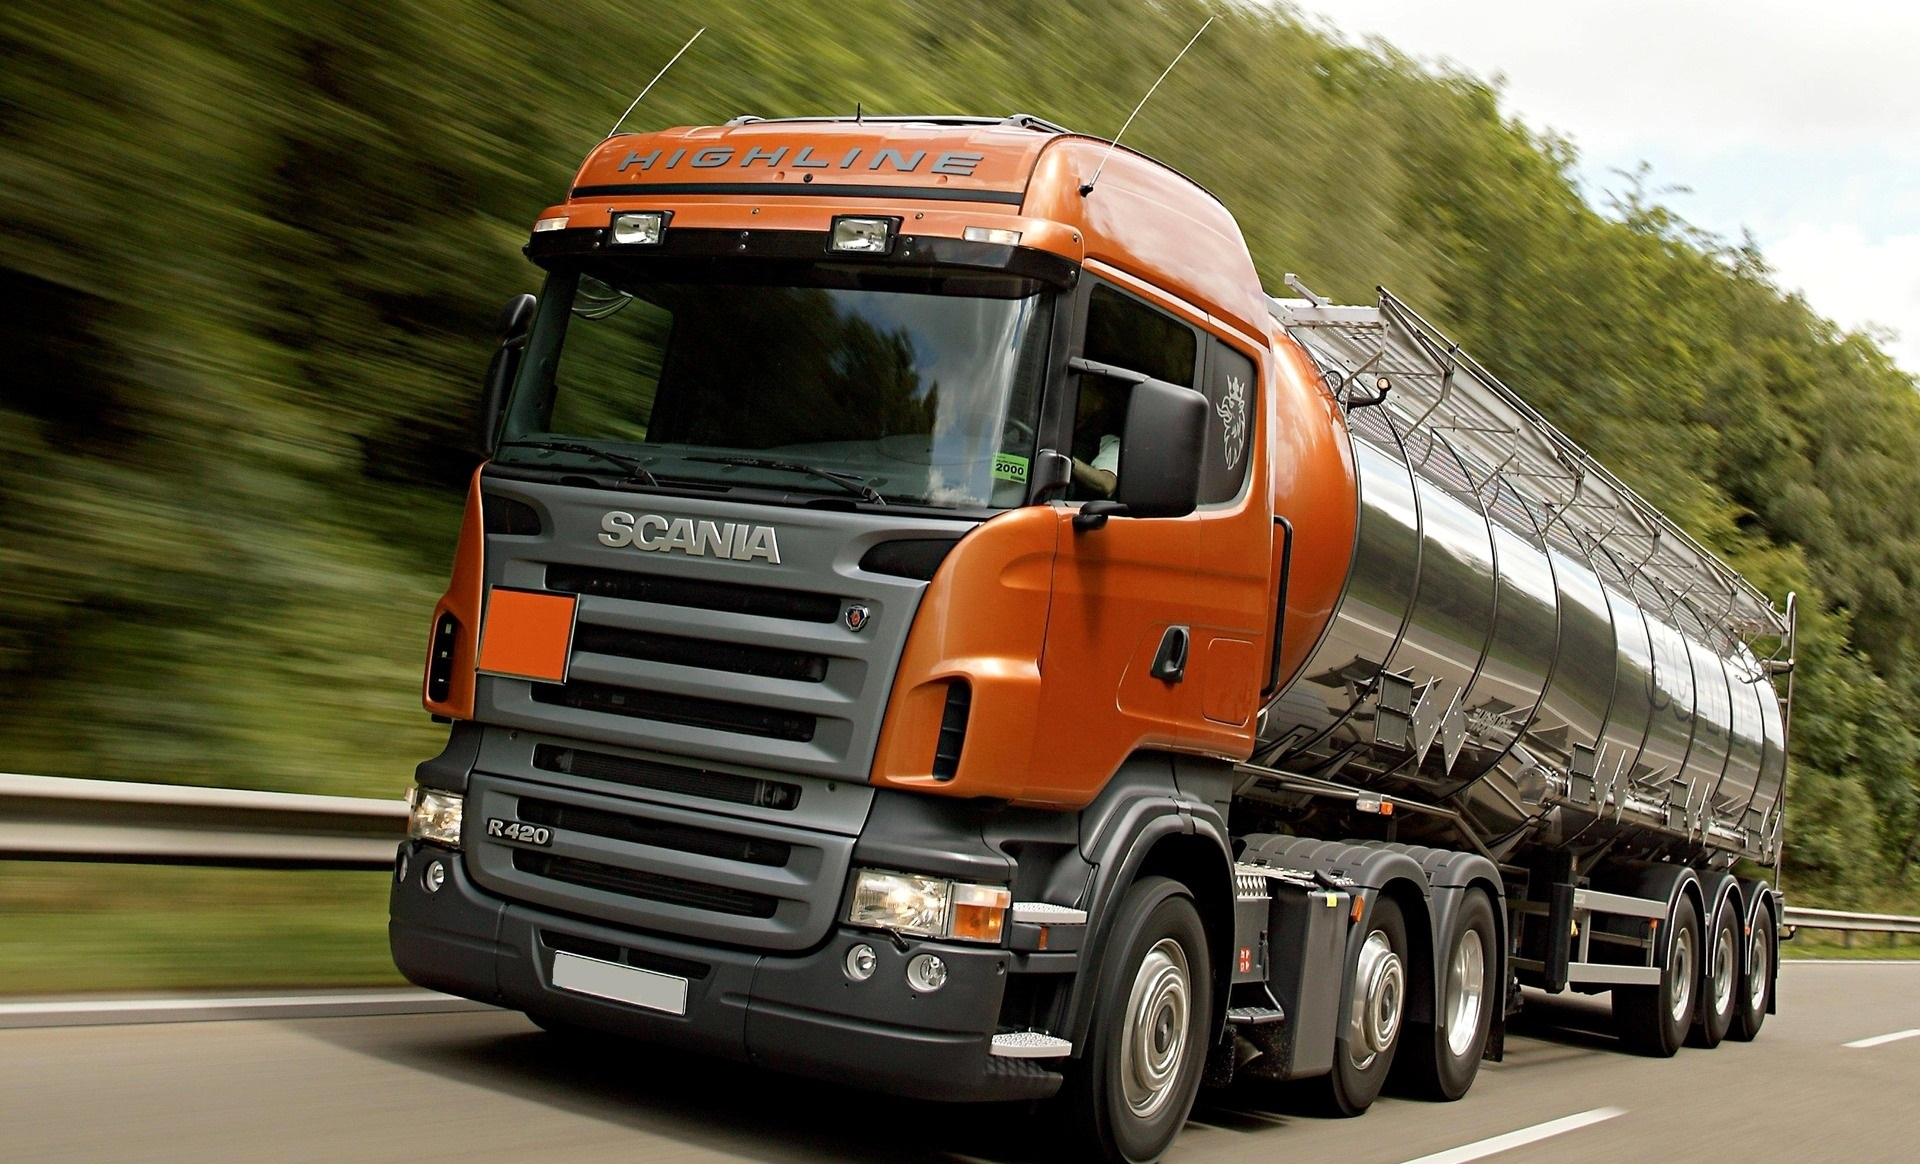 Used Scania Trucks: A trustworthy solution to your transportation ...